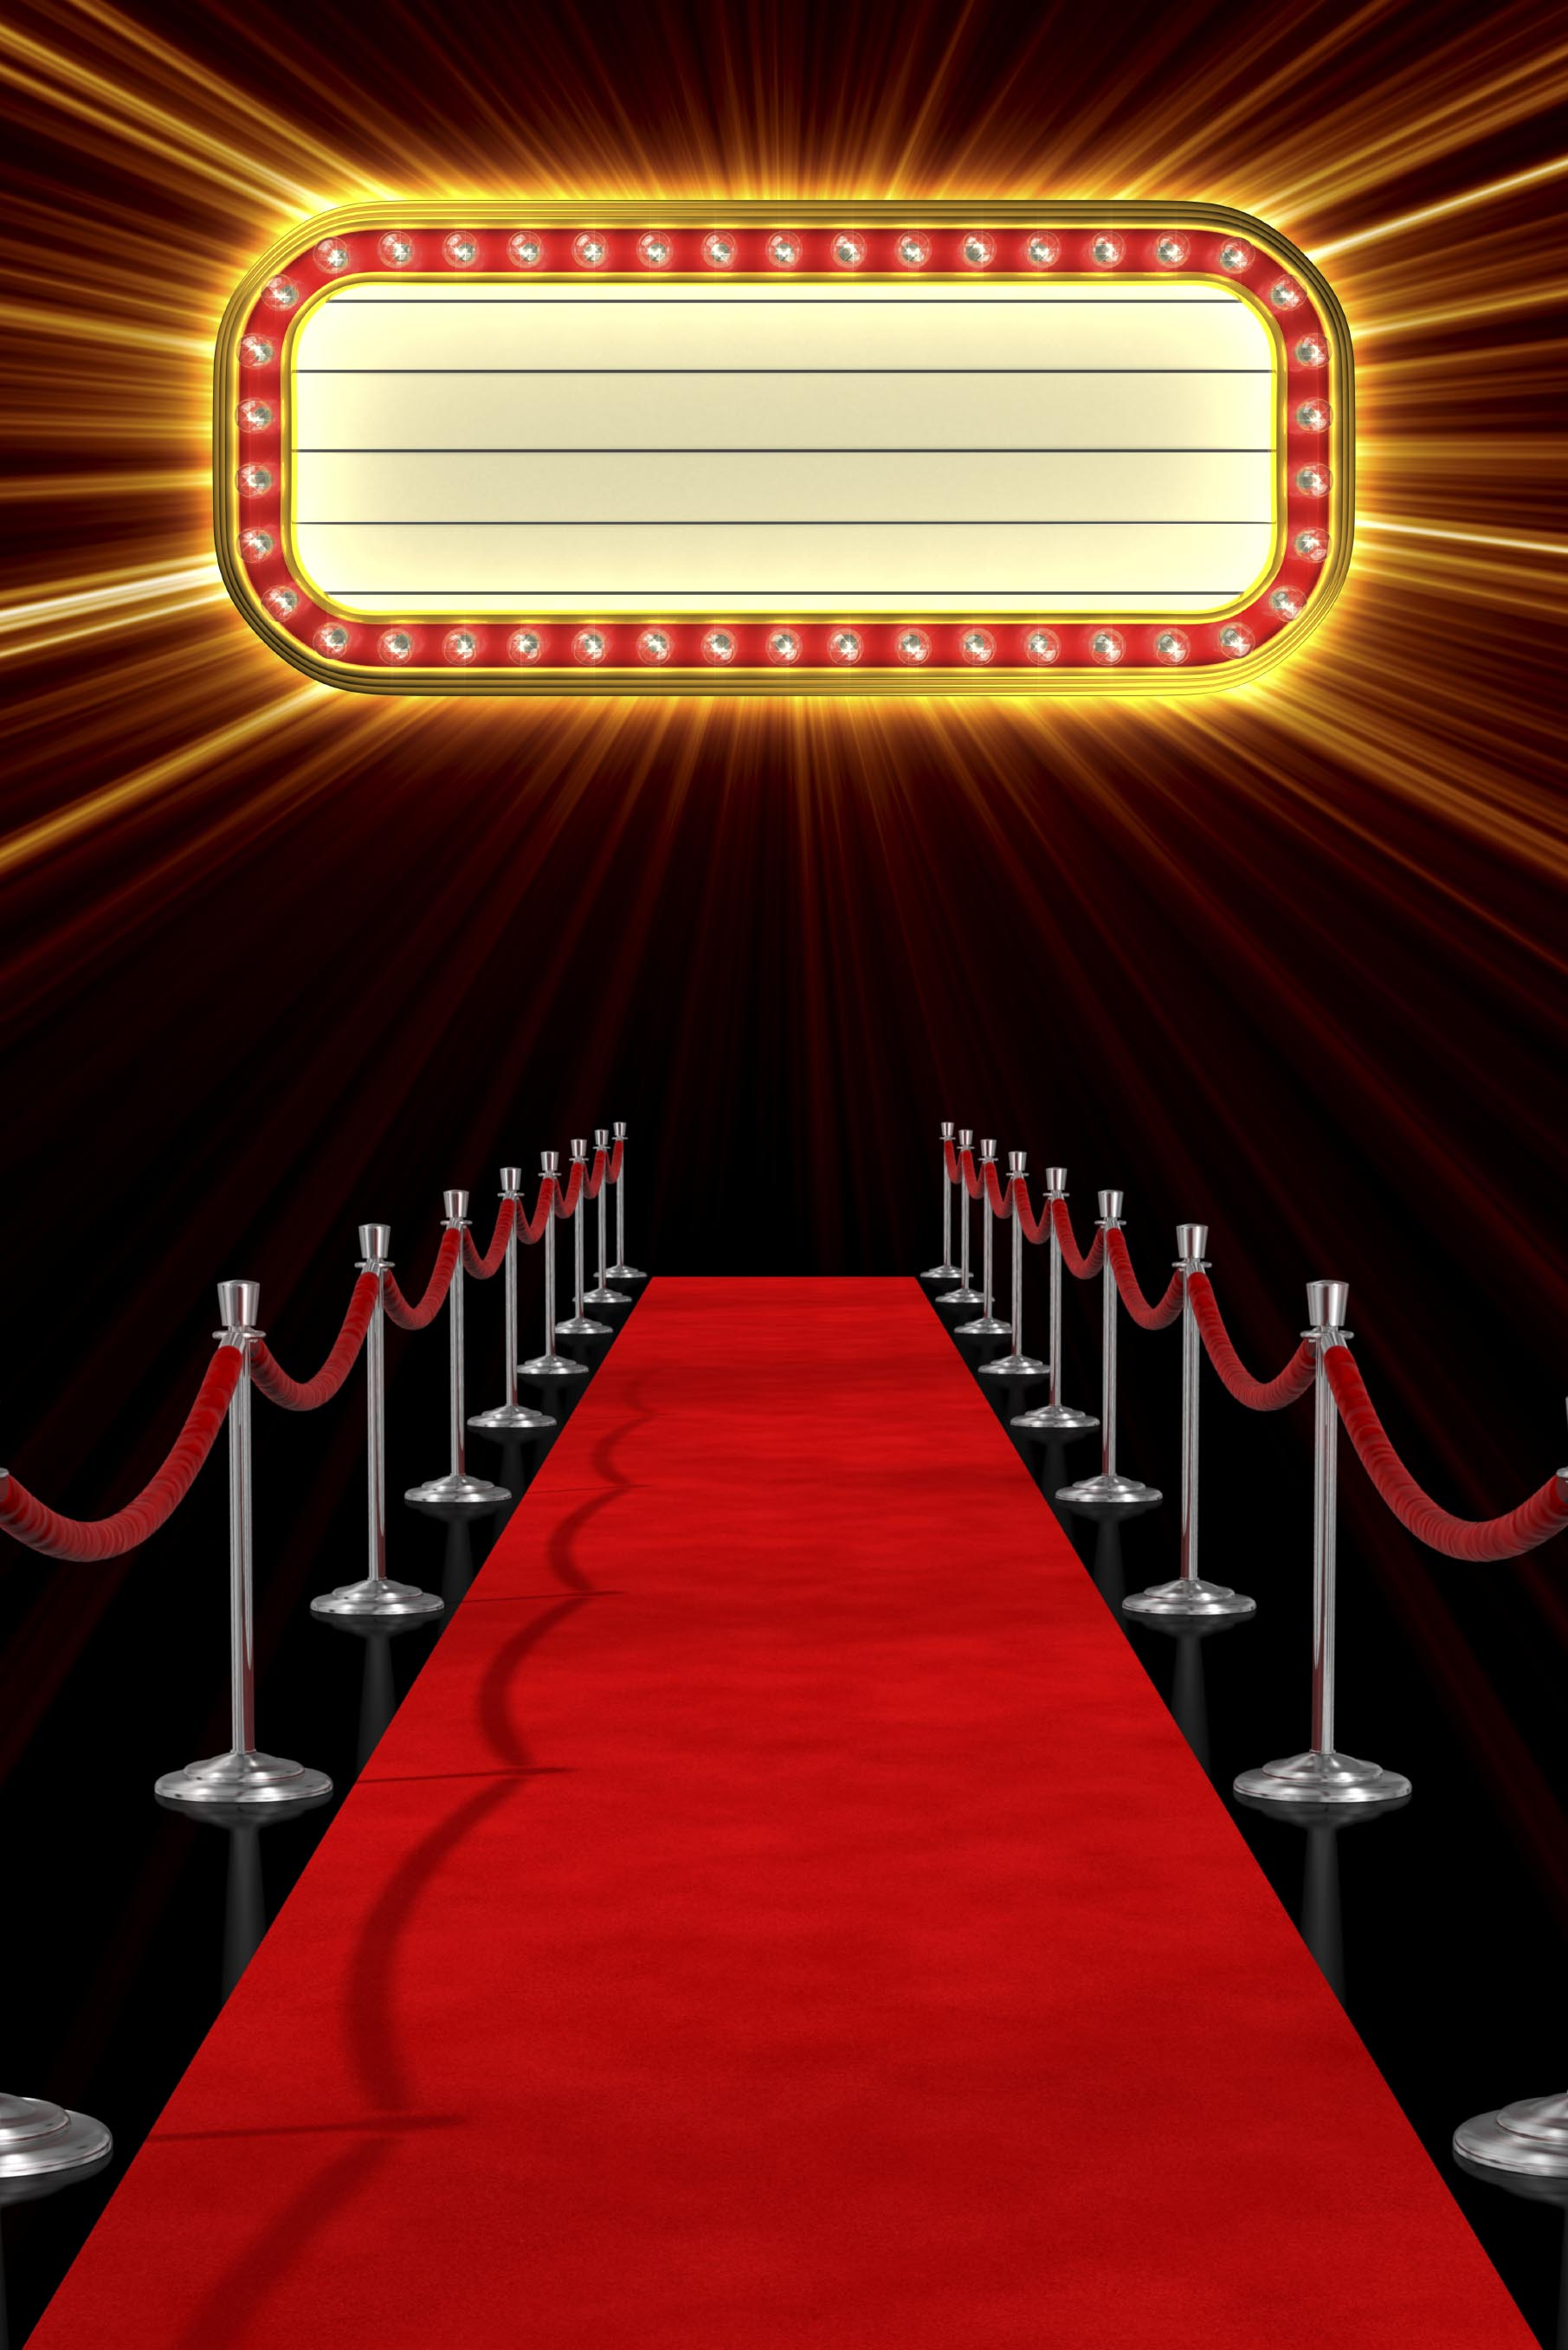 Hollywood Theme Background Images Pictures   Becuo 1811x2714